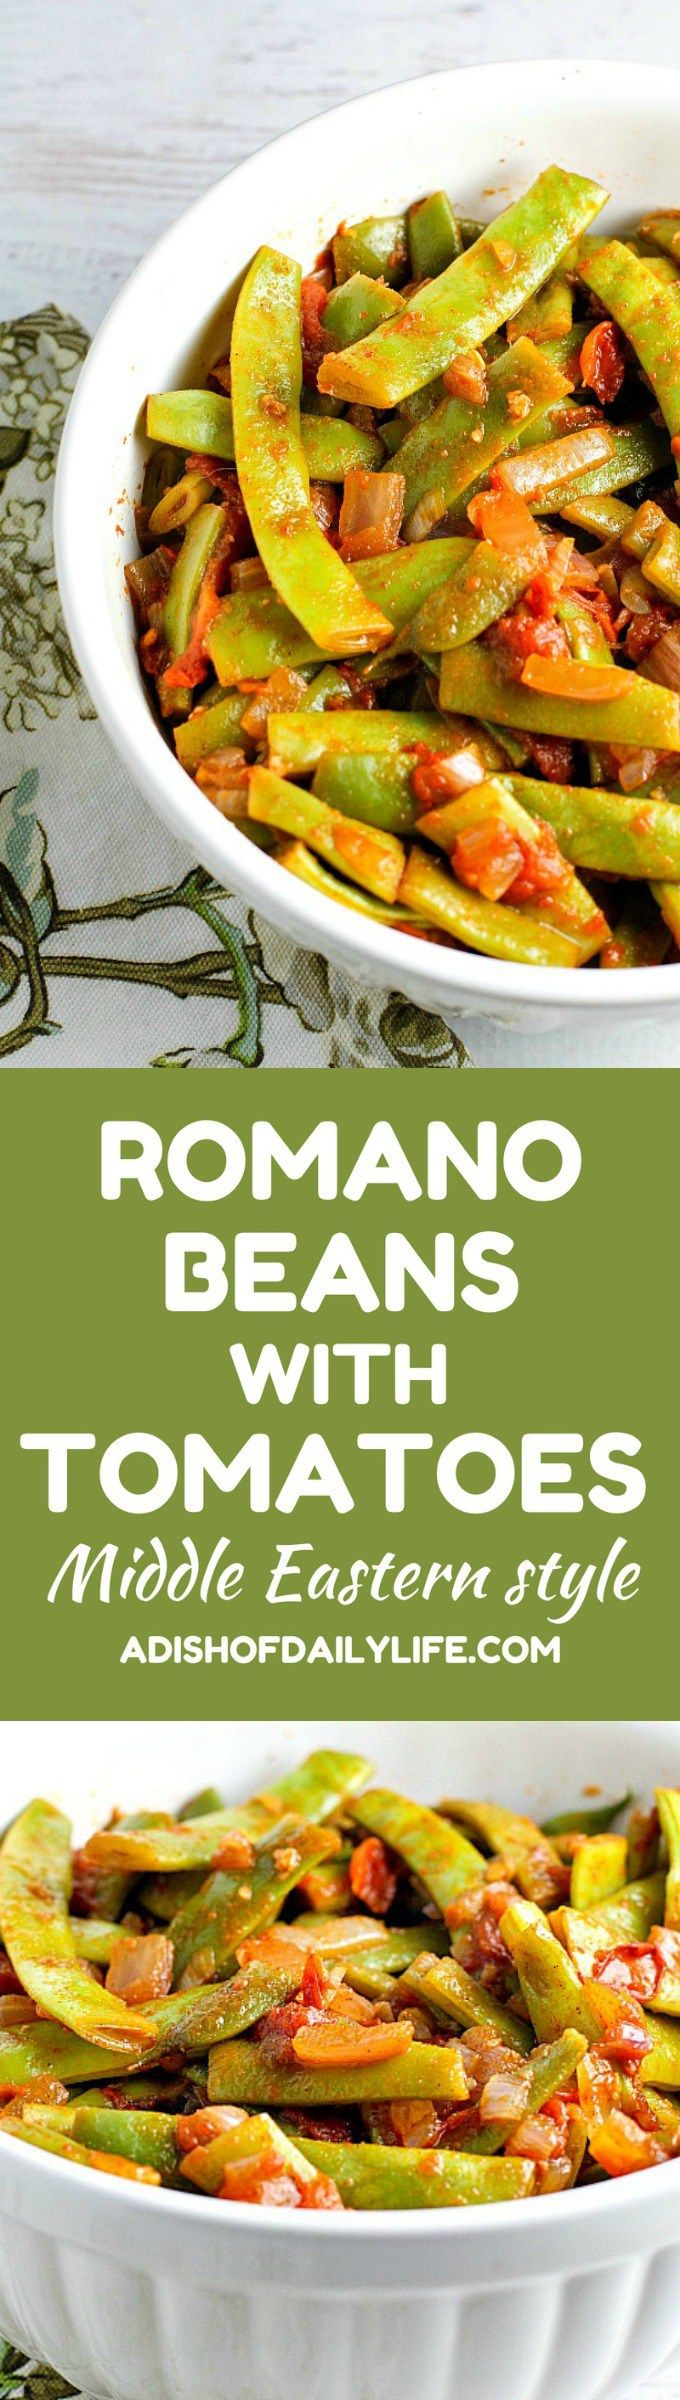 Pick some Romano beans up at the farmer's market this week! Flavorful and easy, Romano Beans with tomatoes is a side dish recipe that goes with just about anything. Definitely a family favorite!